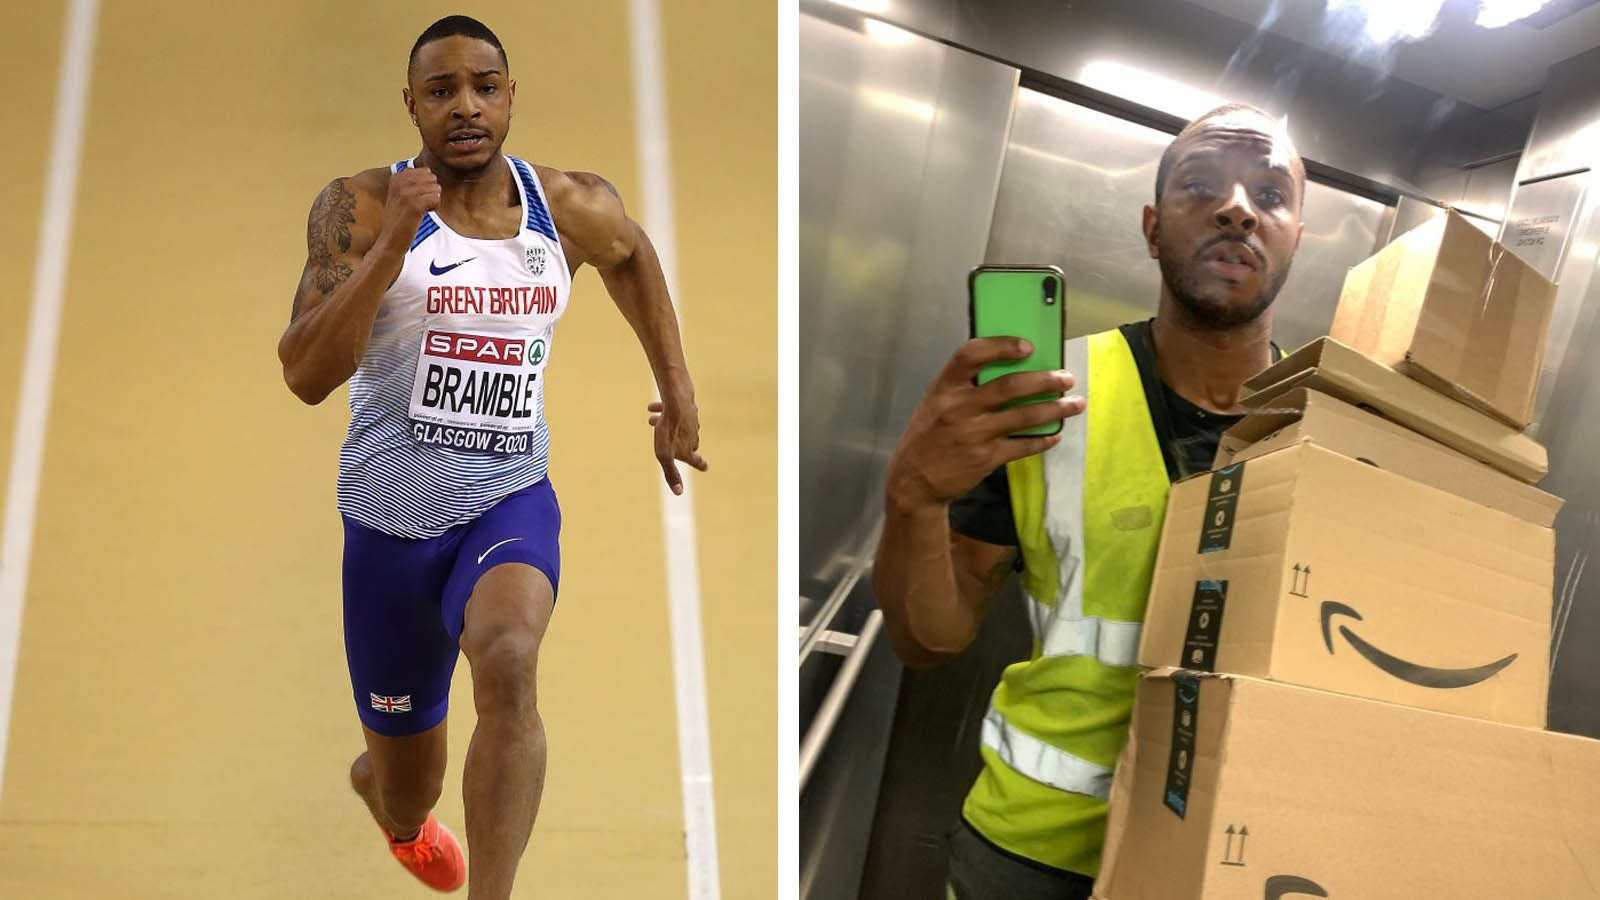 British long jumper, who took a job as a delivery driver, gets funding to continue training